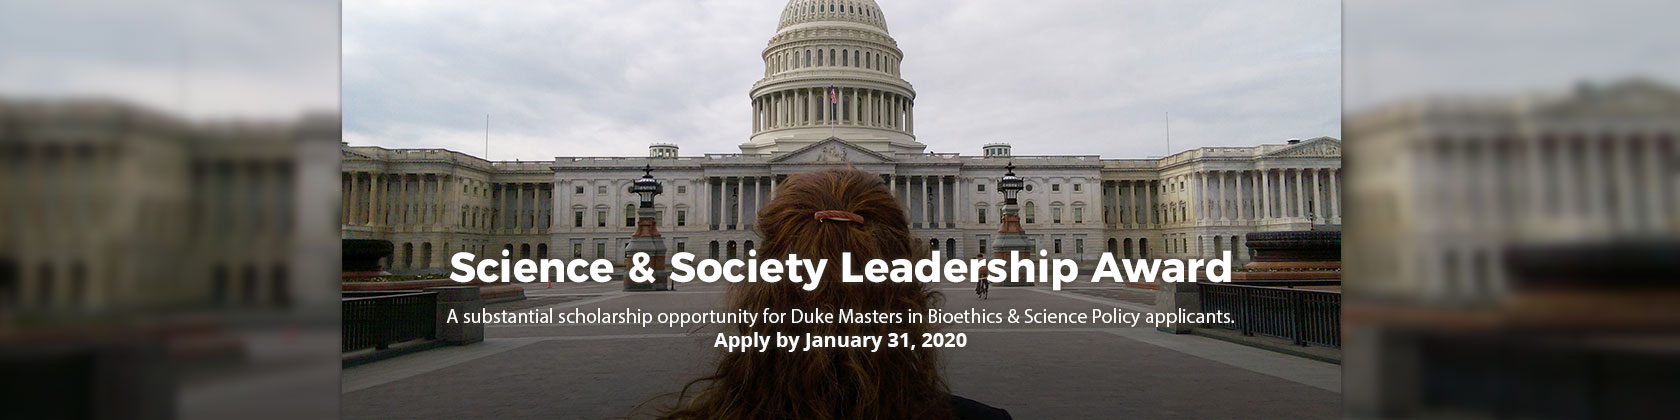 Science & Society Leadership Award: A substantial scholarship opportunity for Duke Masters in Bioethics & Science Policy applicants. Apply by January 31, 2020